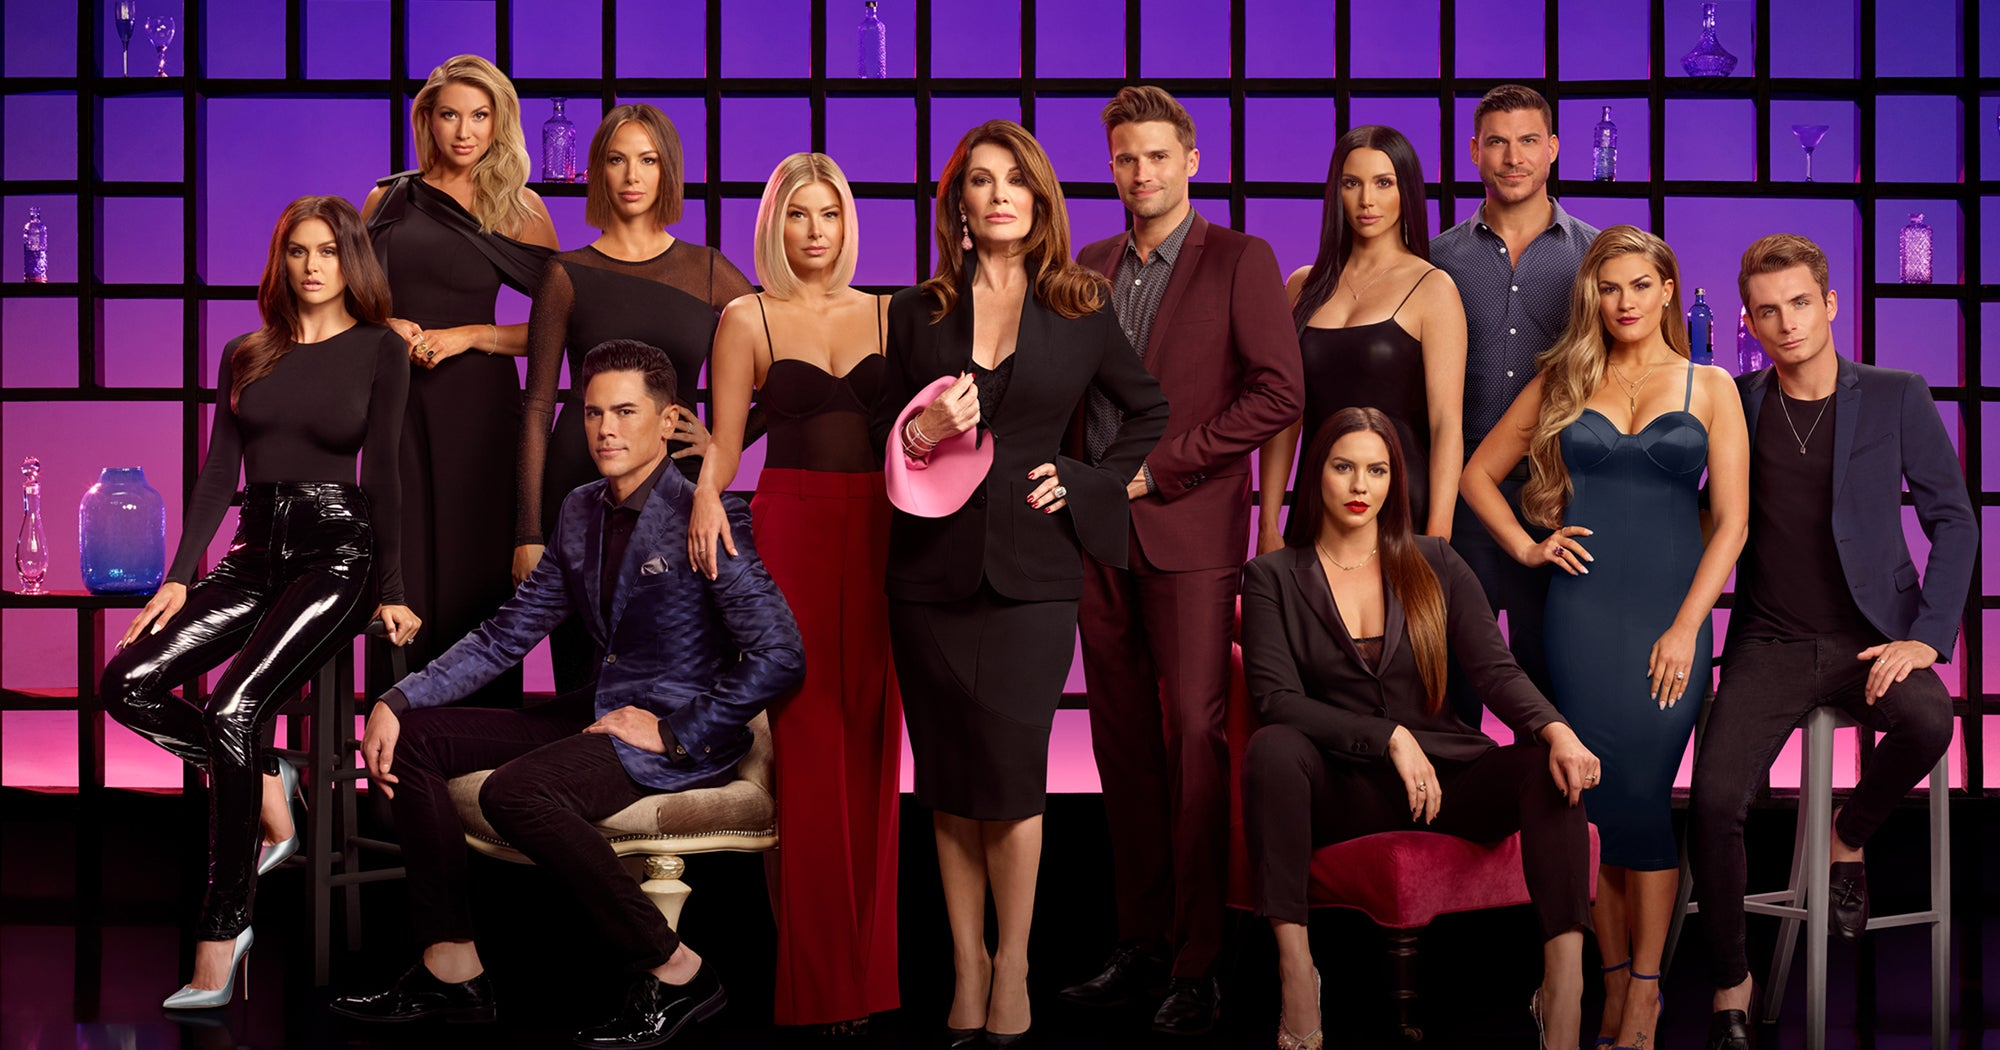 Face It, Vanderpump Rules Is The New Friends